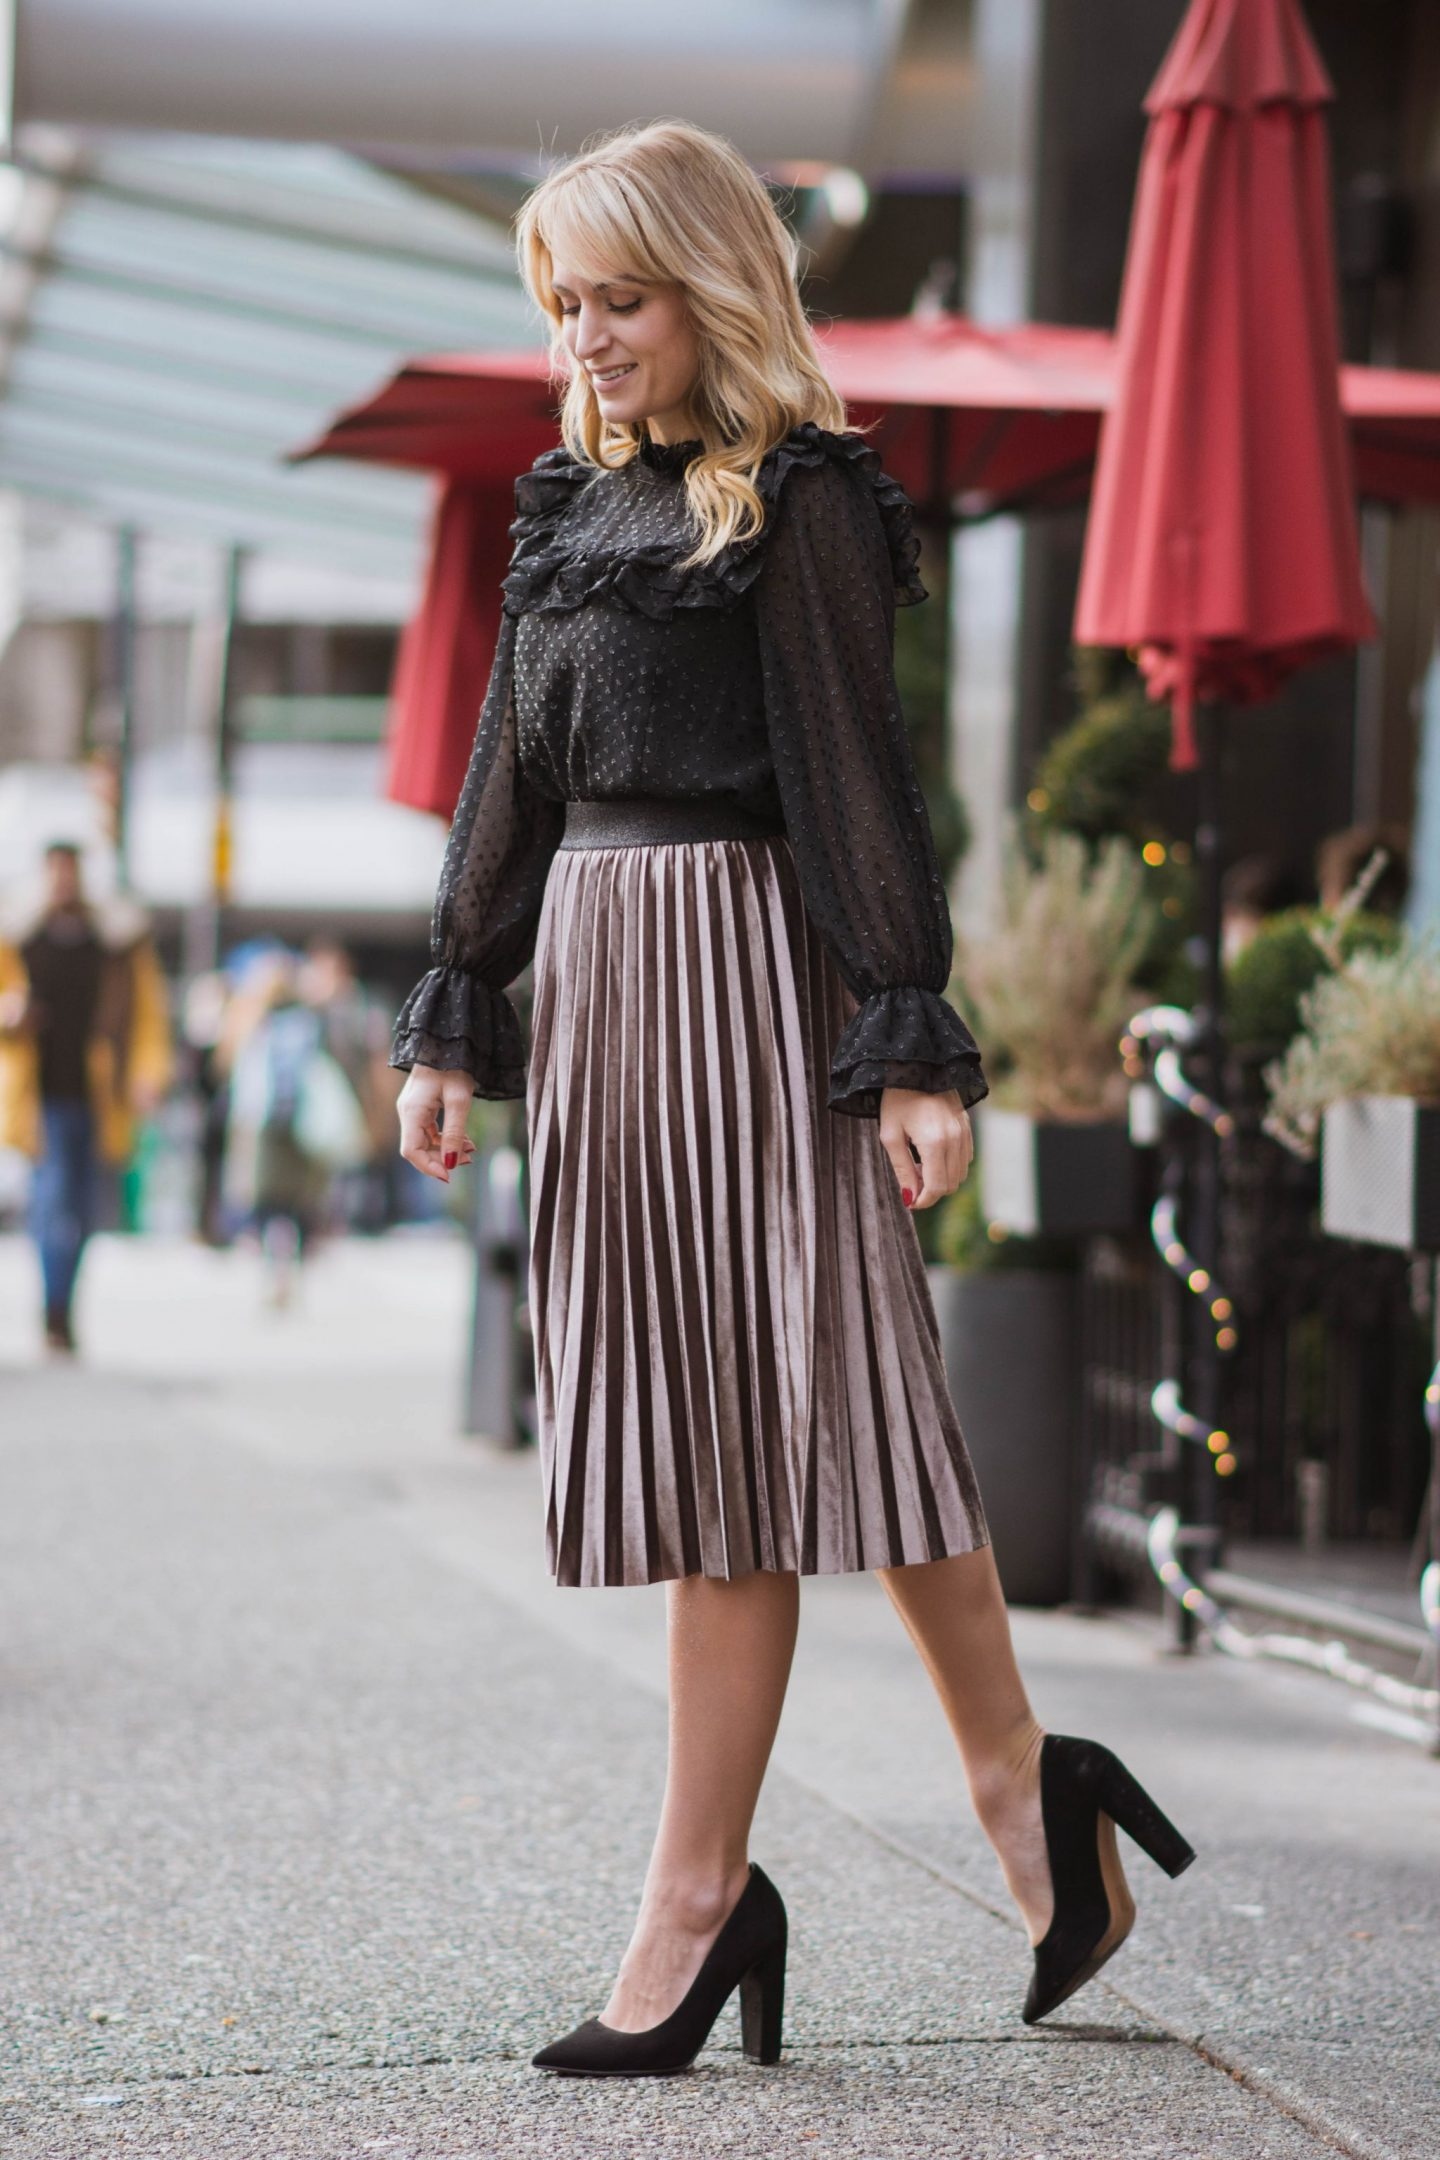 woman-wearing-pleated-velvet-midi-skirt-outfit-walking